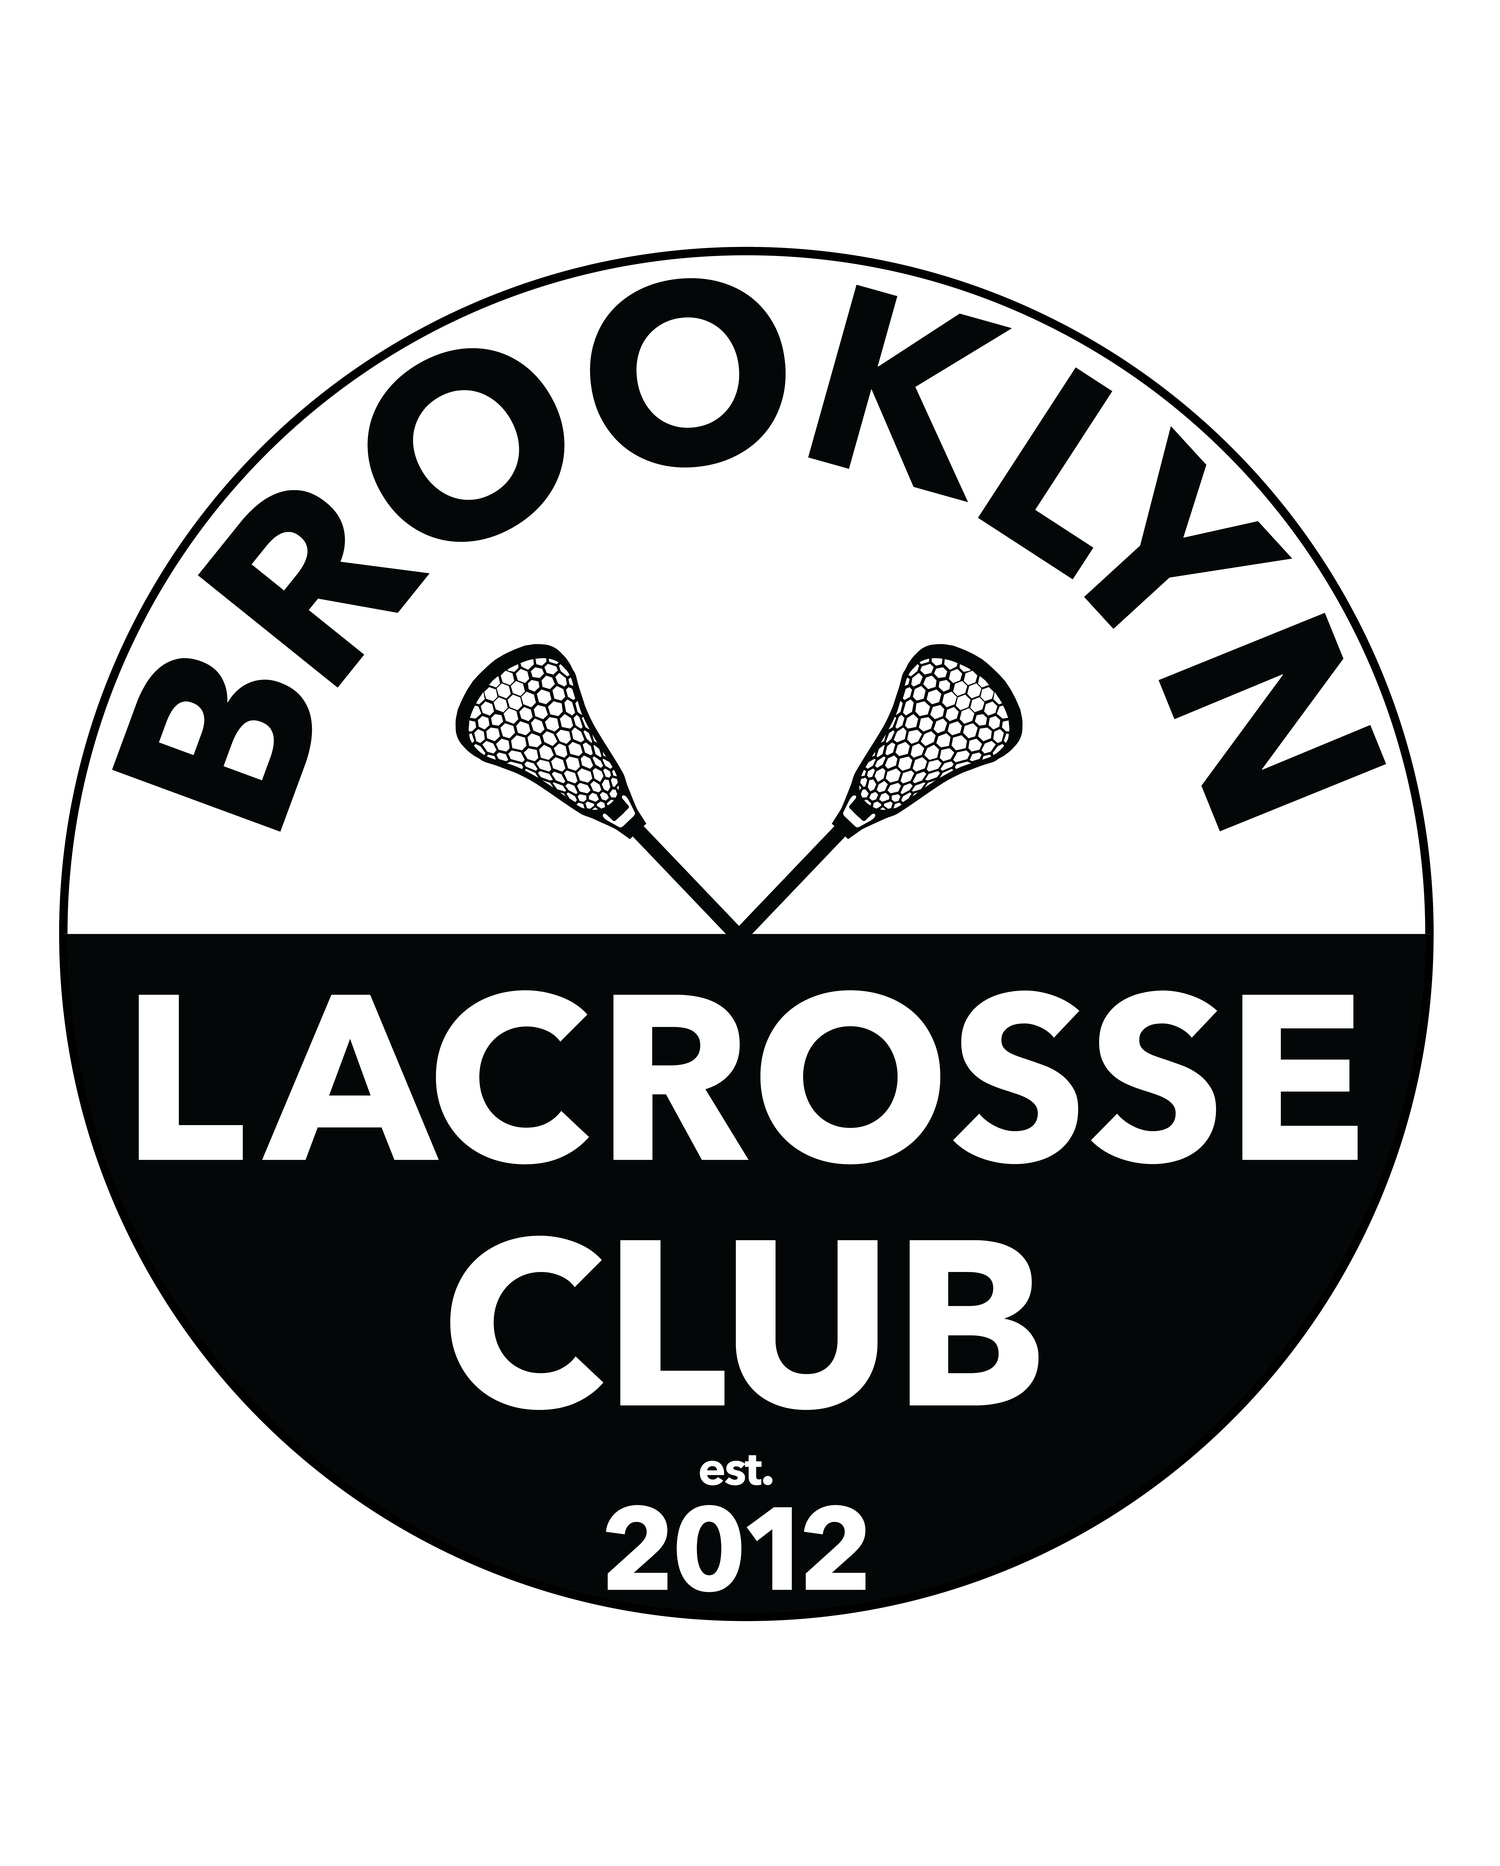 Brooklyn Lacrosse